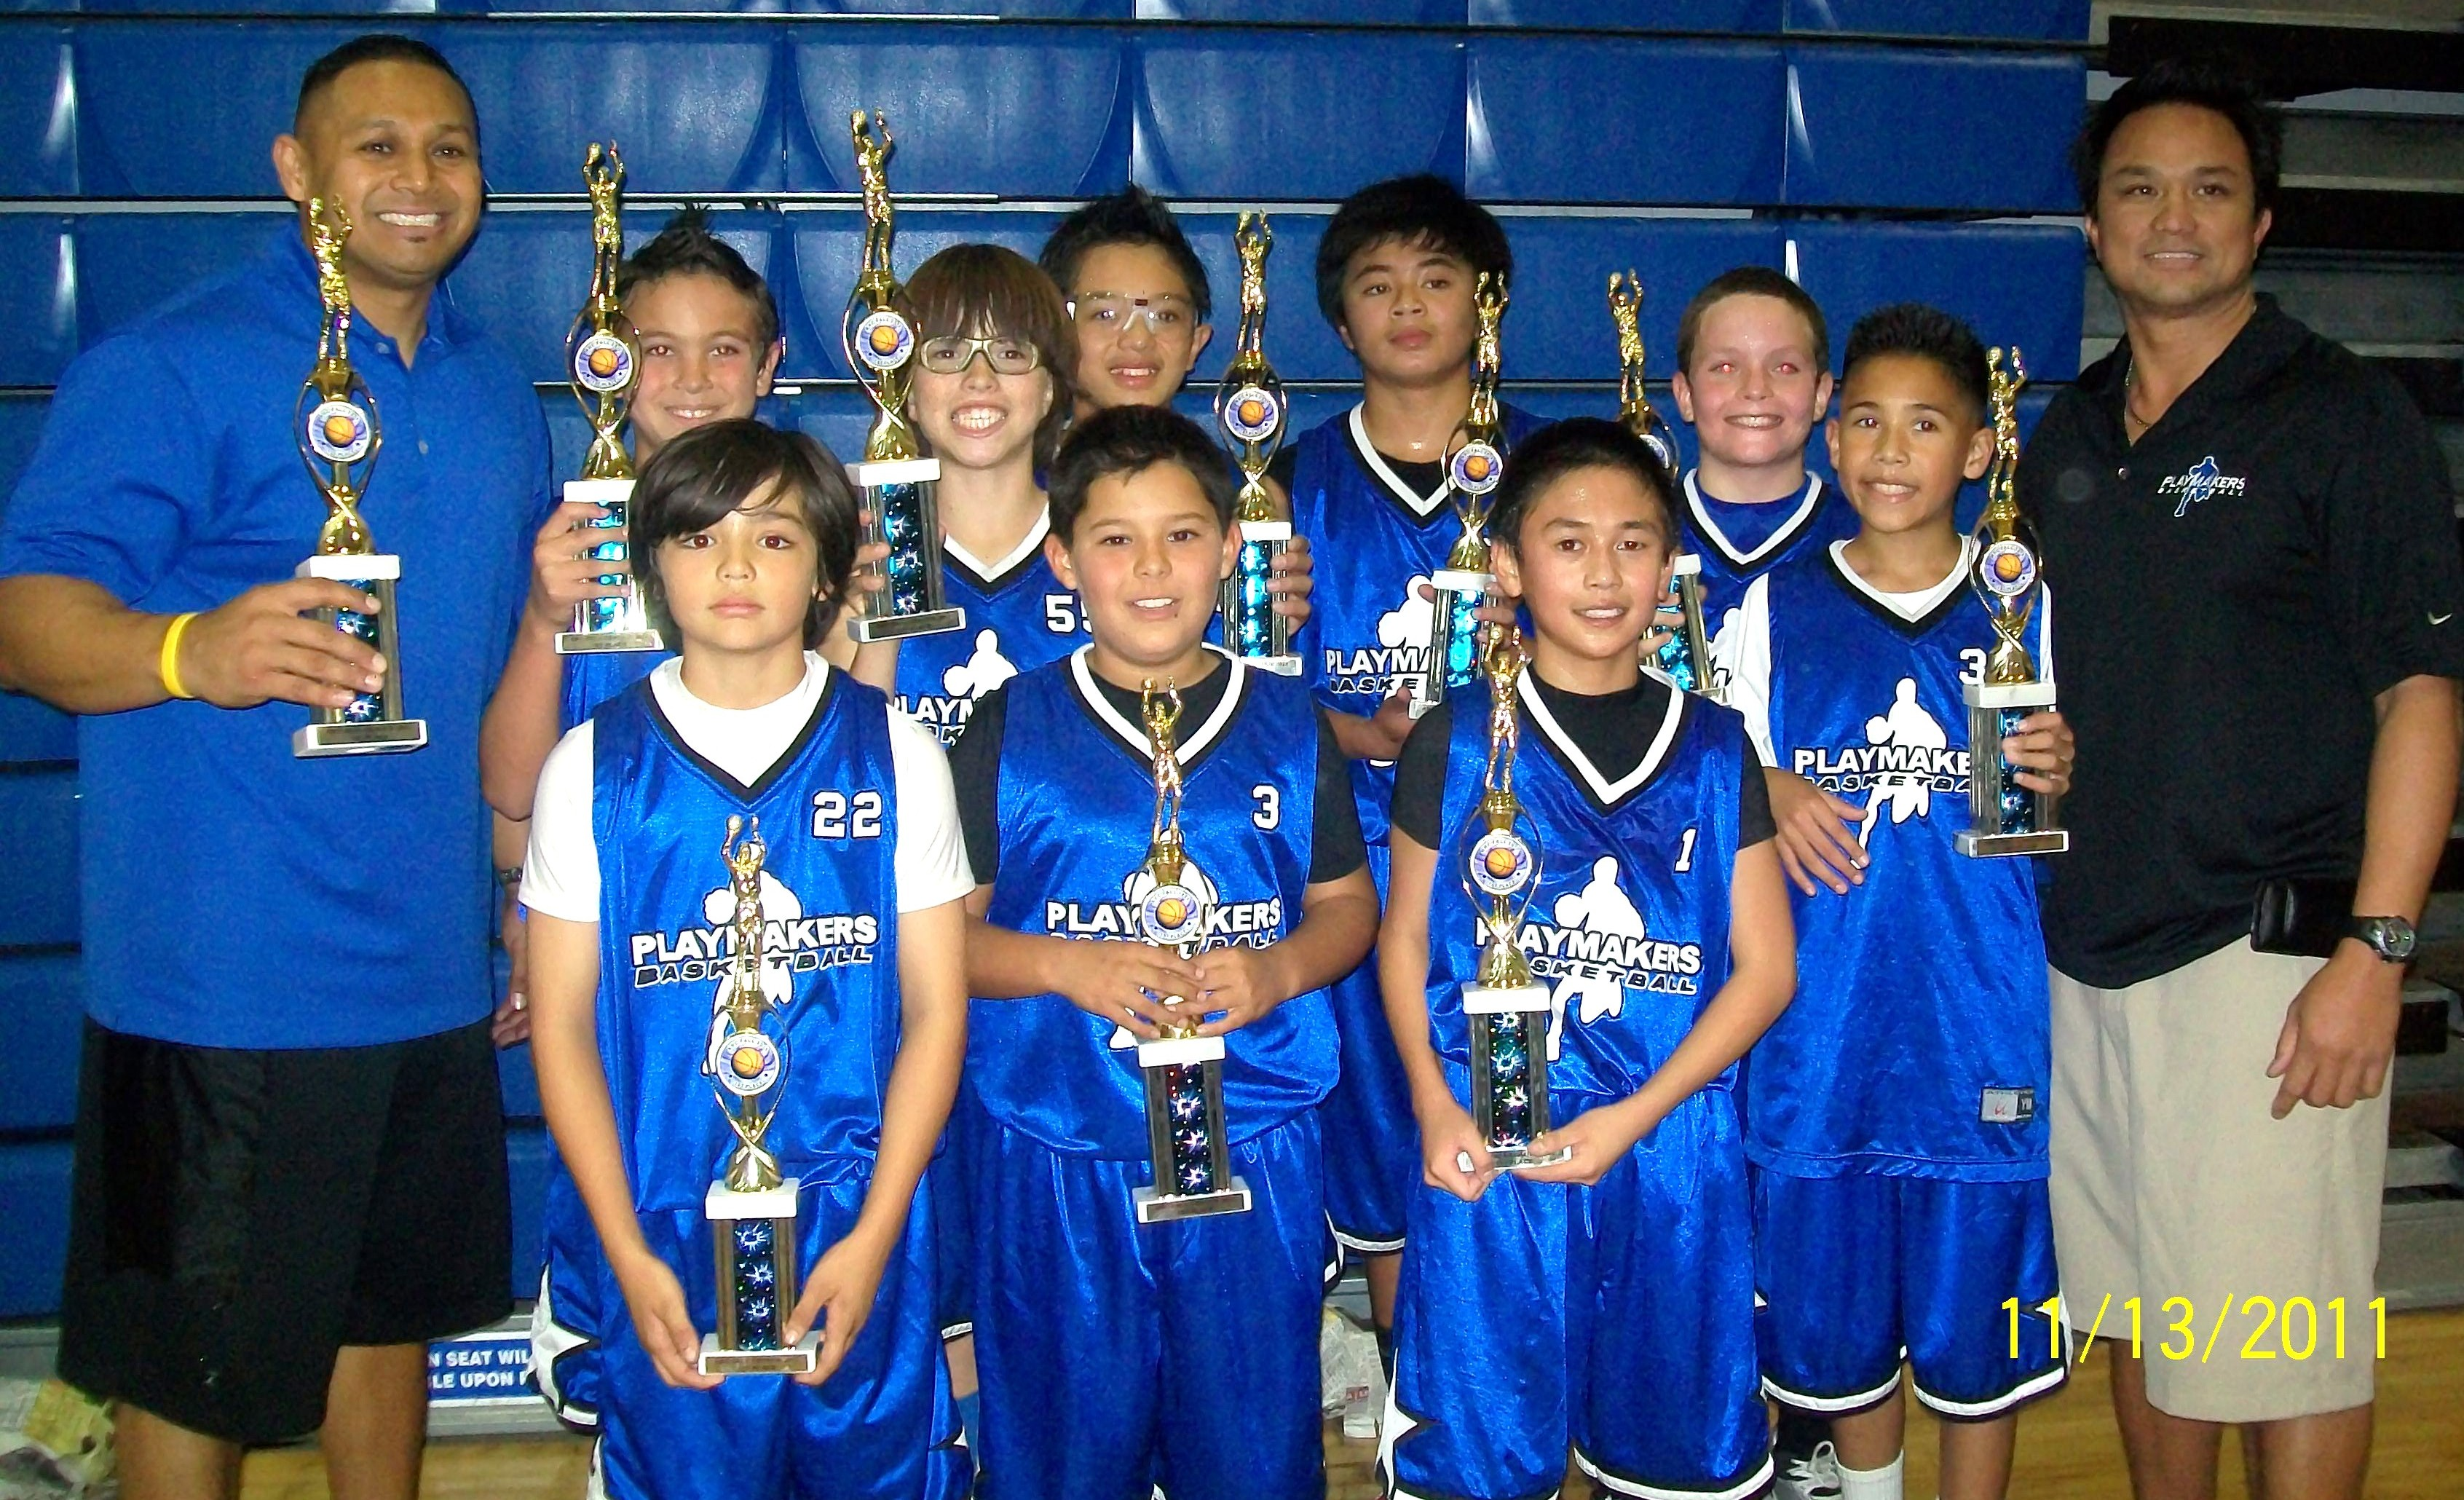 WEST COAST CHAMPIONS - Playmakers